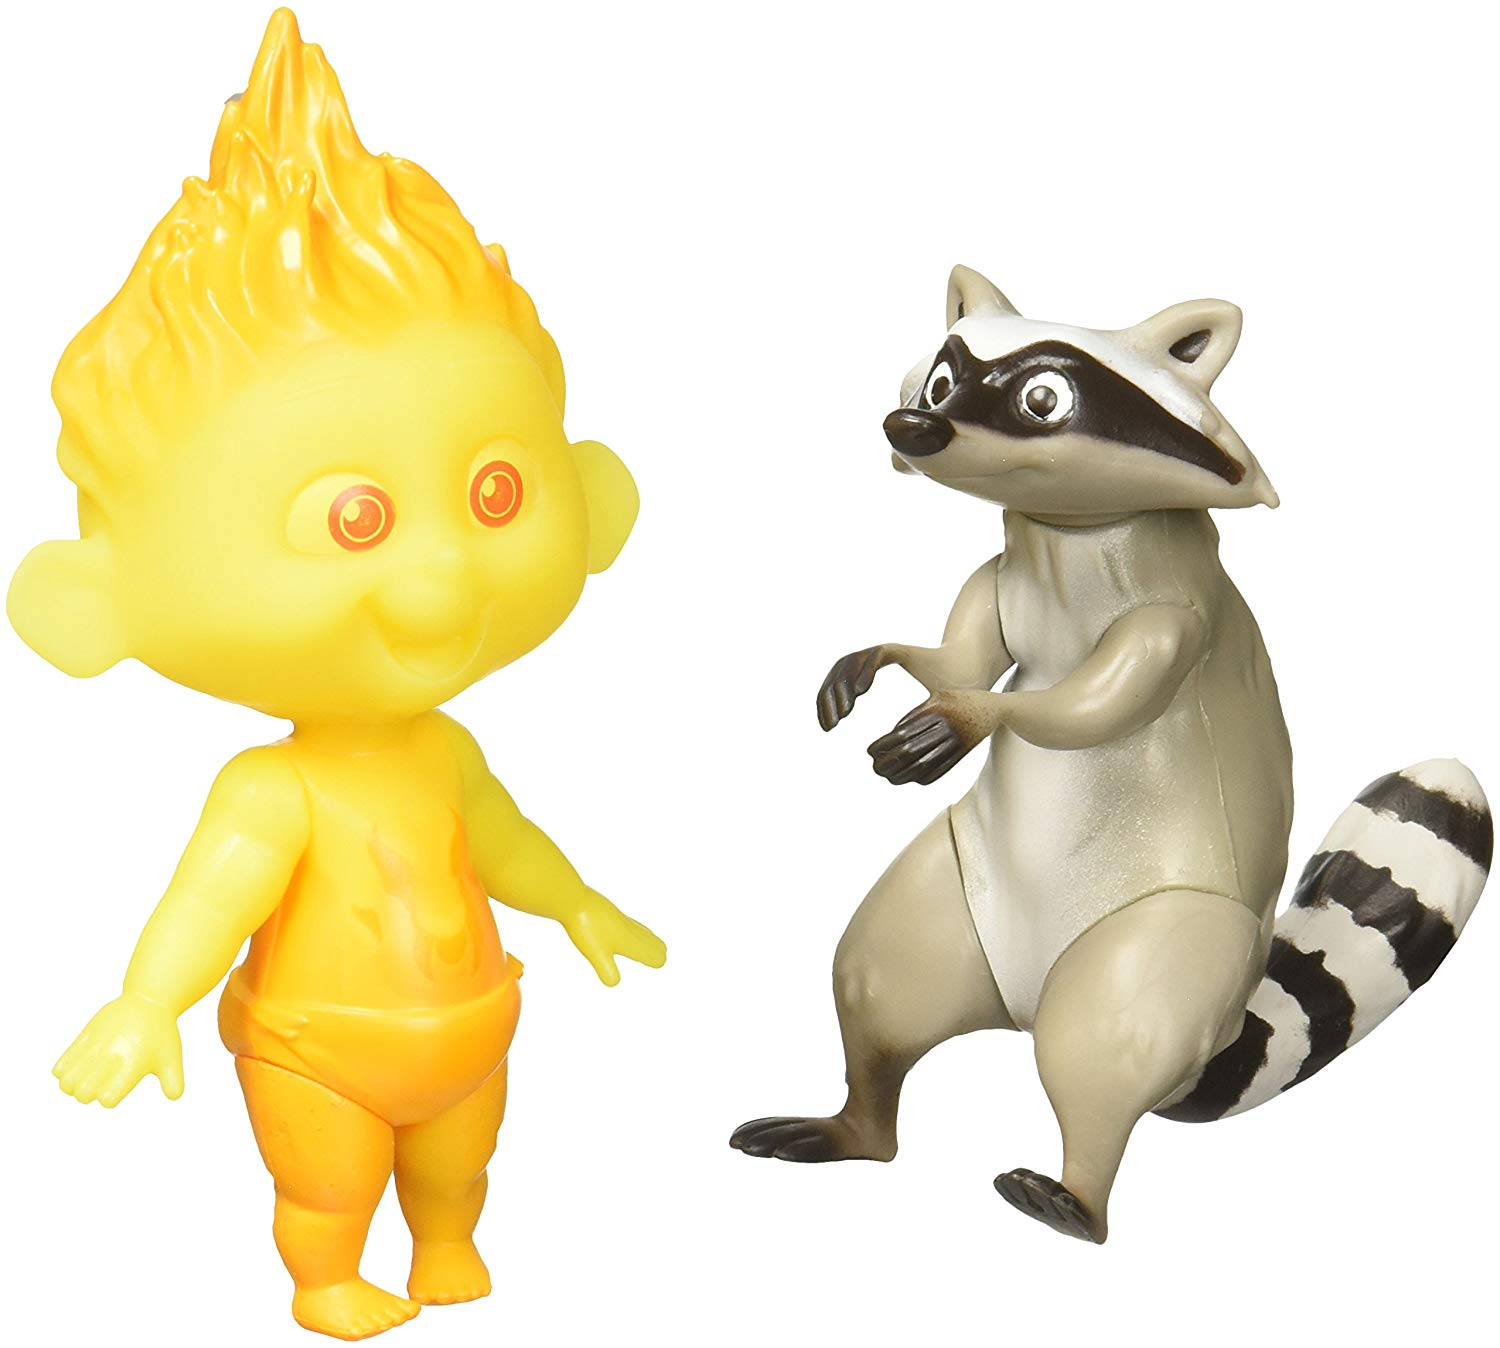 603be891e Get Quotations · The Incredibles 2 Jack-Jack & Raccoon Action Figures 12